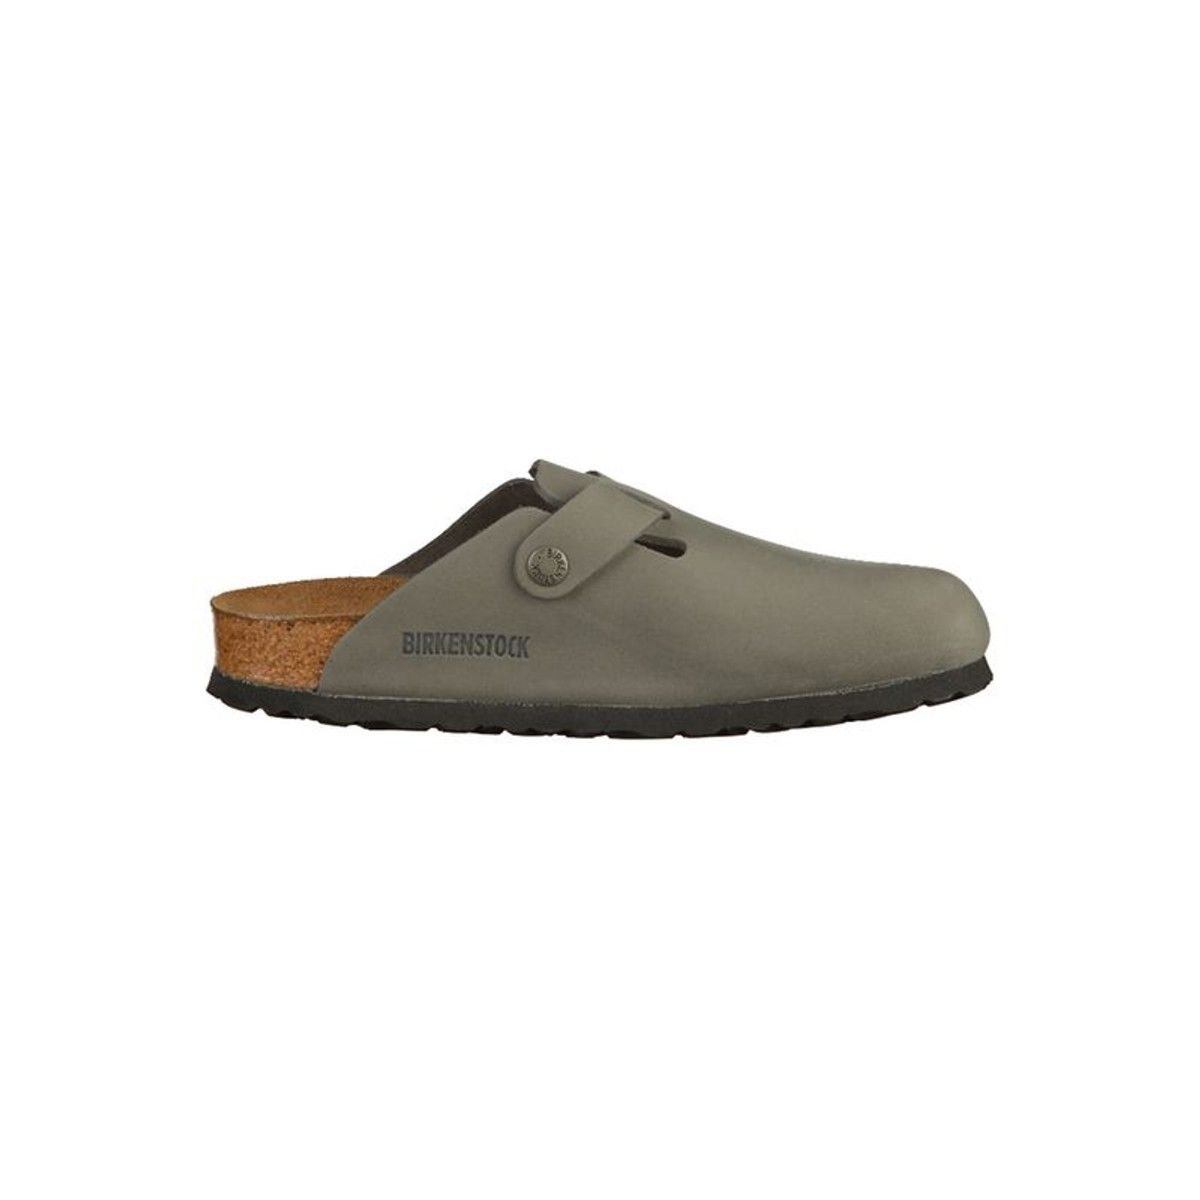 Sabot Boston Taille36;37;38;39;40;41Products Taille36;37;38;39;40;41Products Sabots Taille36;37;38;39;40;41Products Sabot Femme Boston Femme Sabots Boston Sabots Sabot sQhxBrCtdo